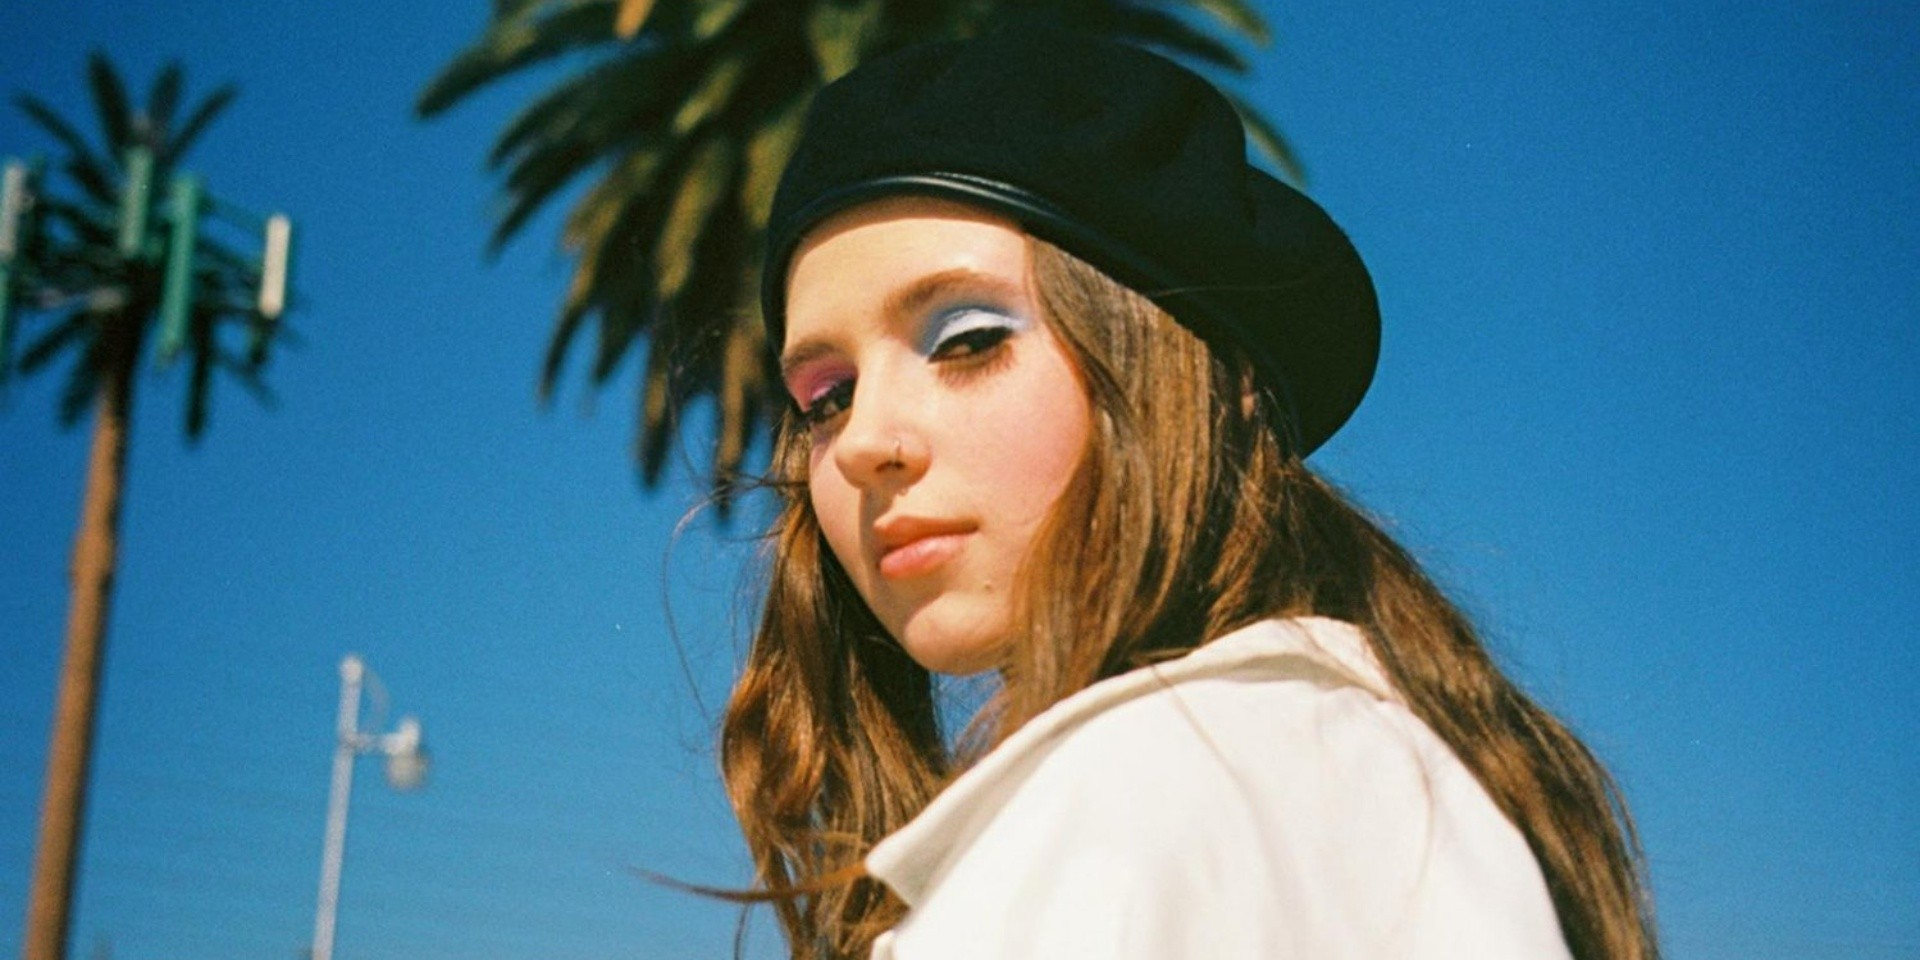 Clairo to perform in Singapore in 2019